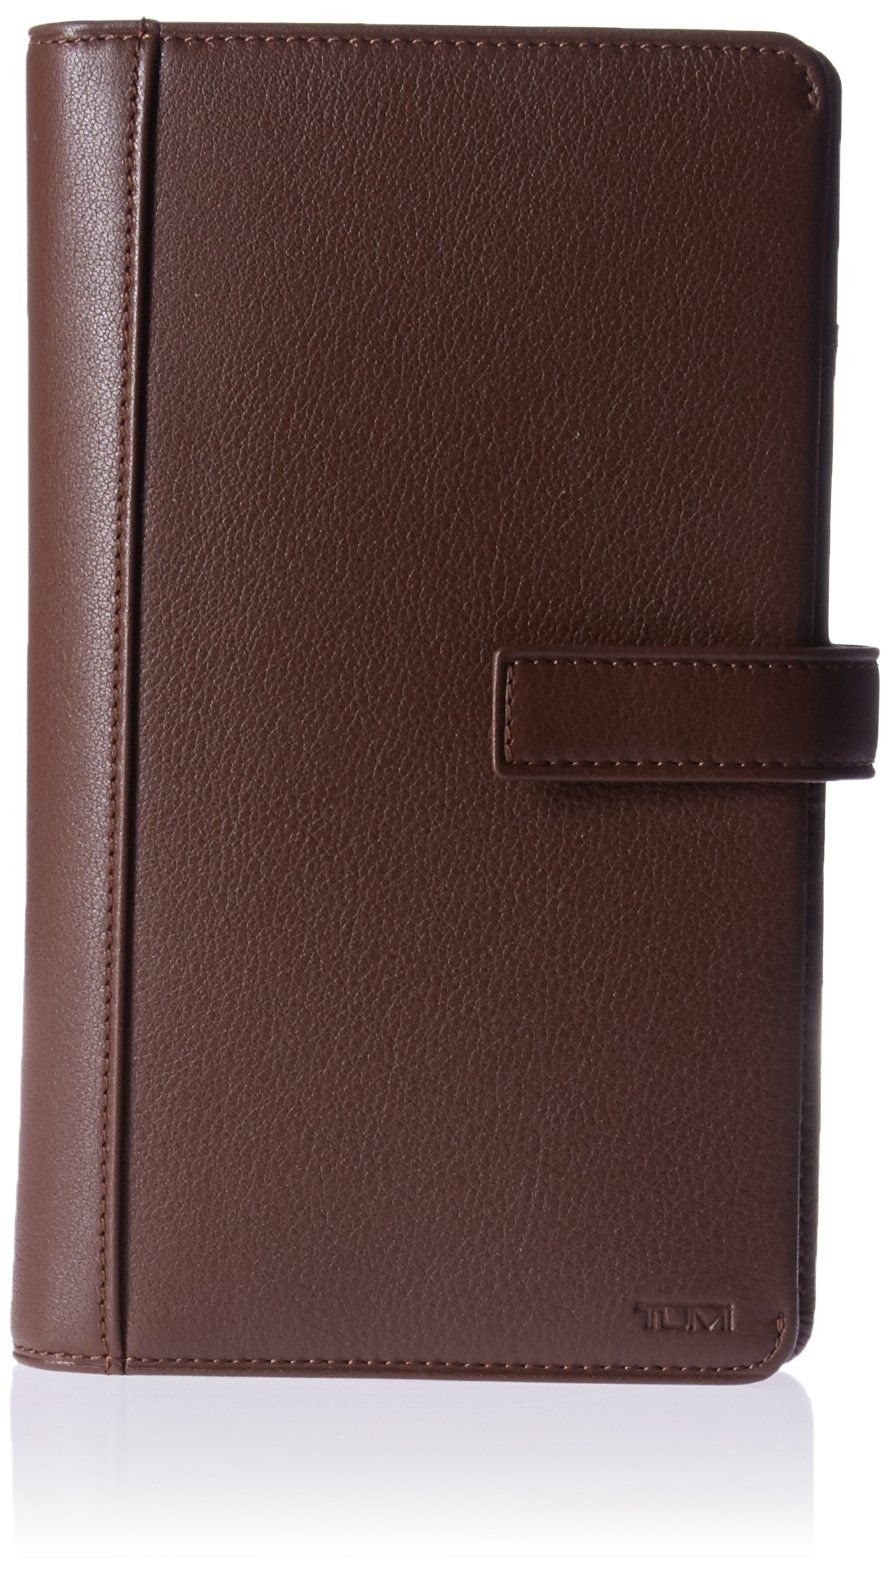 Tumi Nassau Travel Organizer, Brown Texture